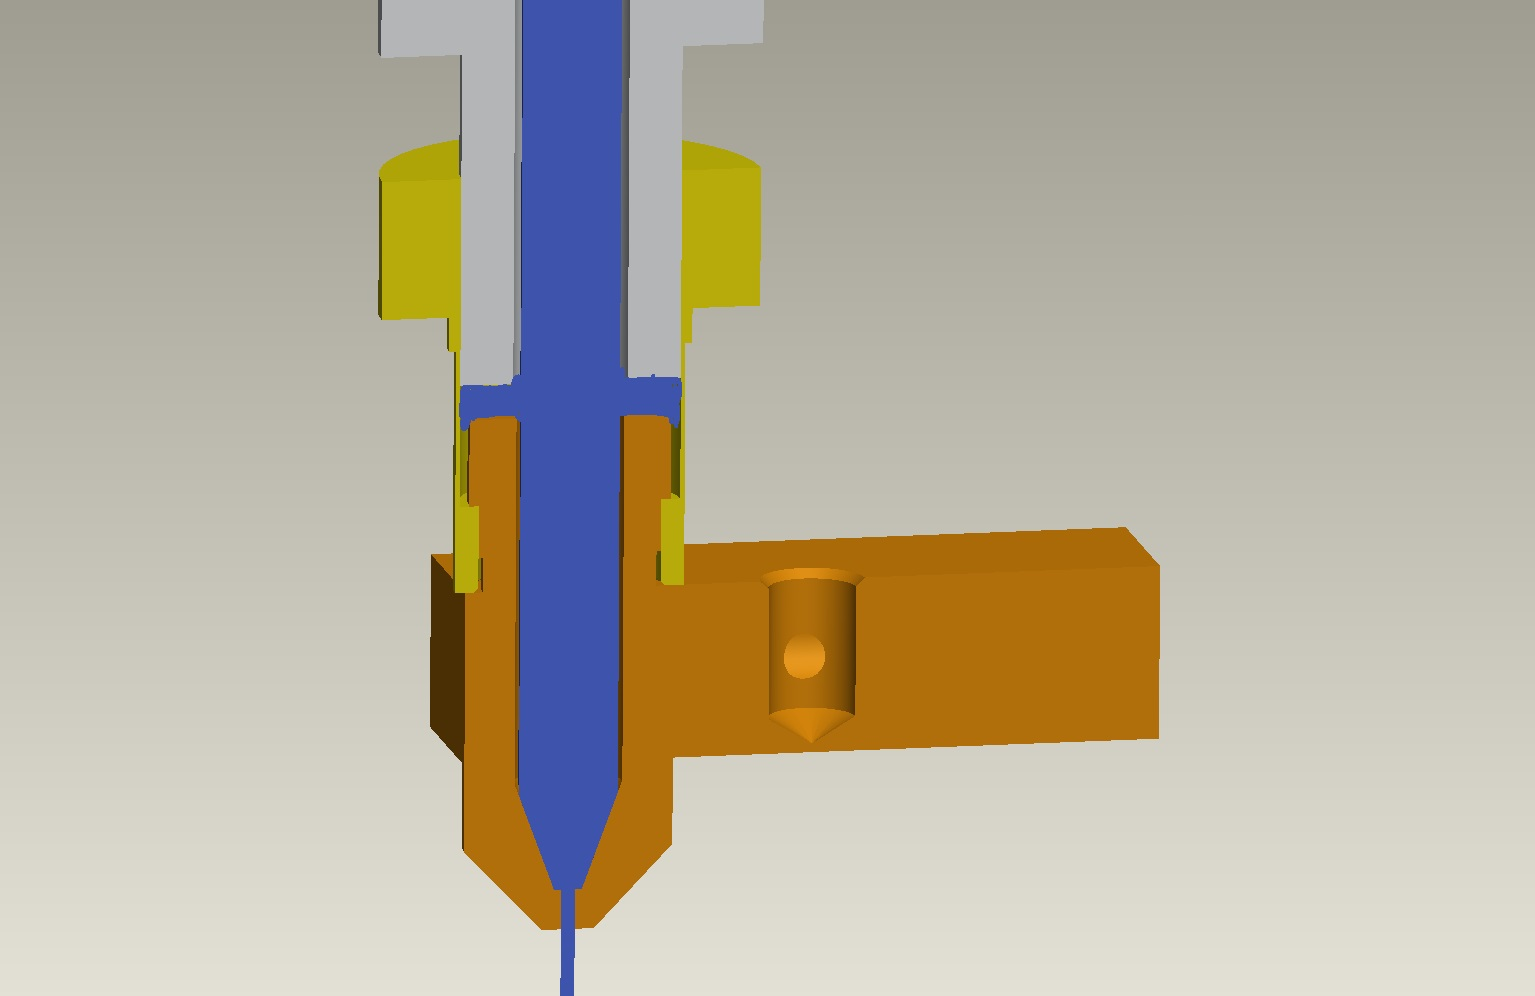 ultimaker_2_nozzle_teflon_space.jpg